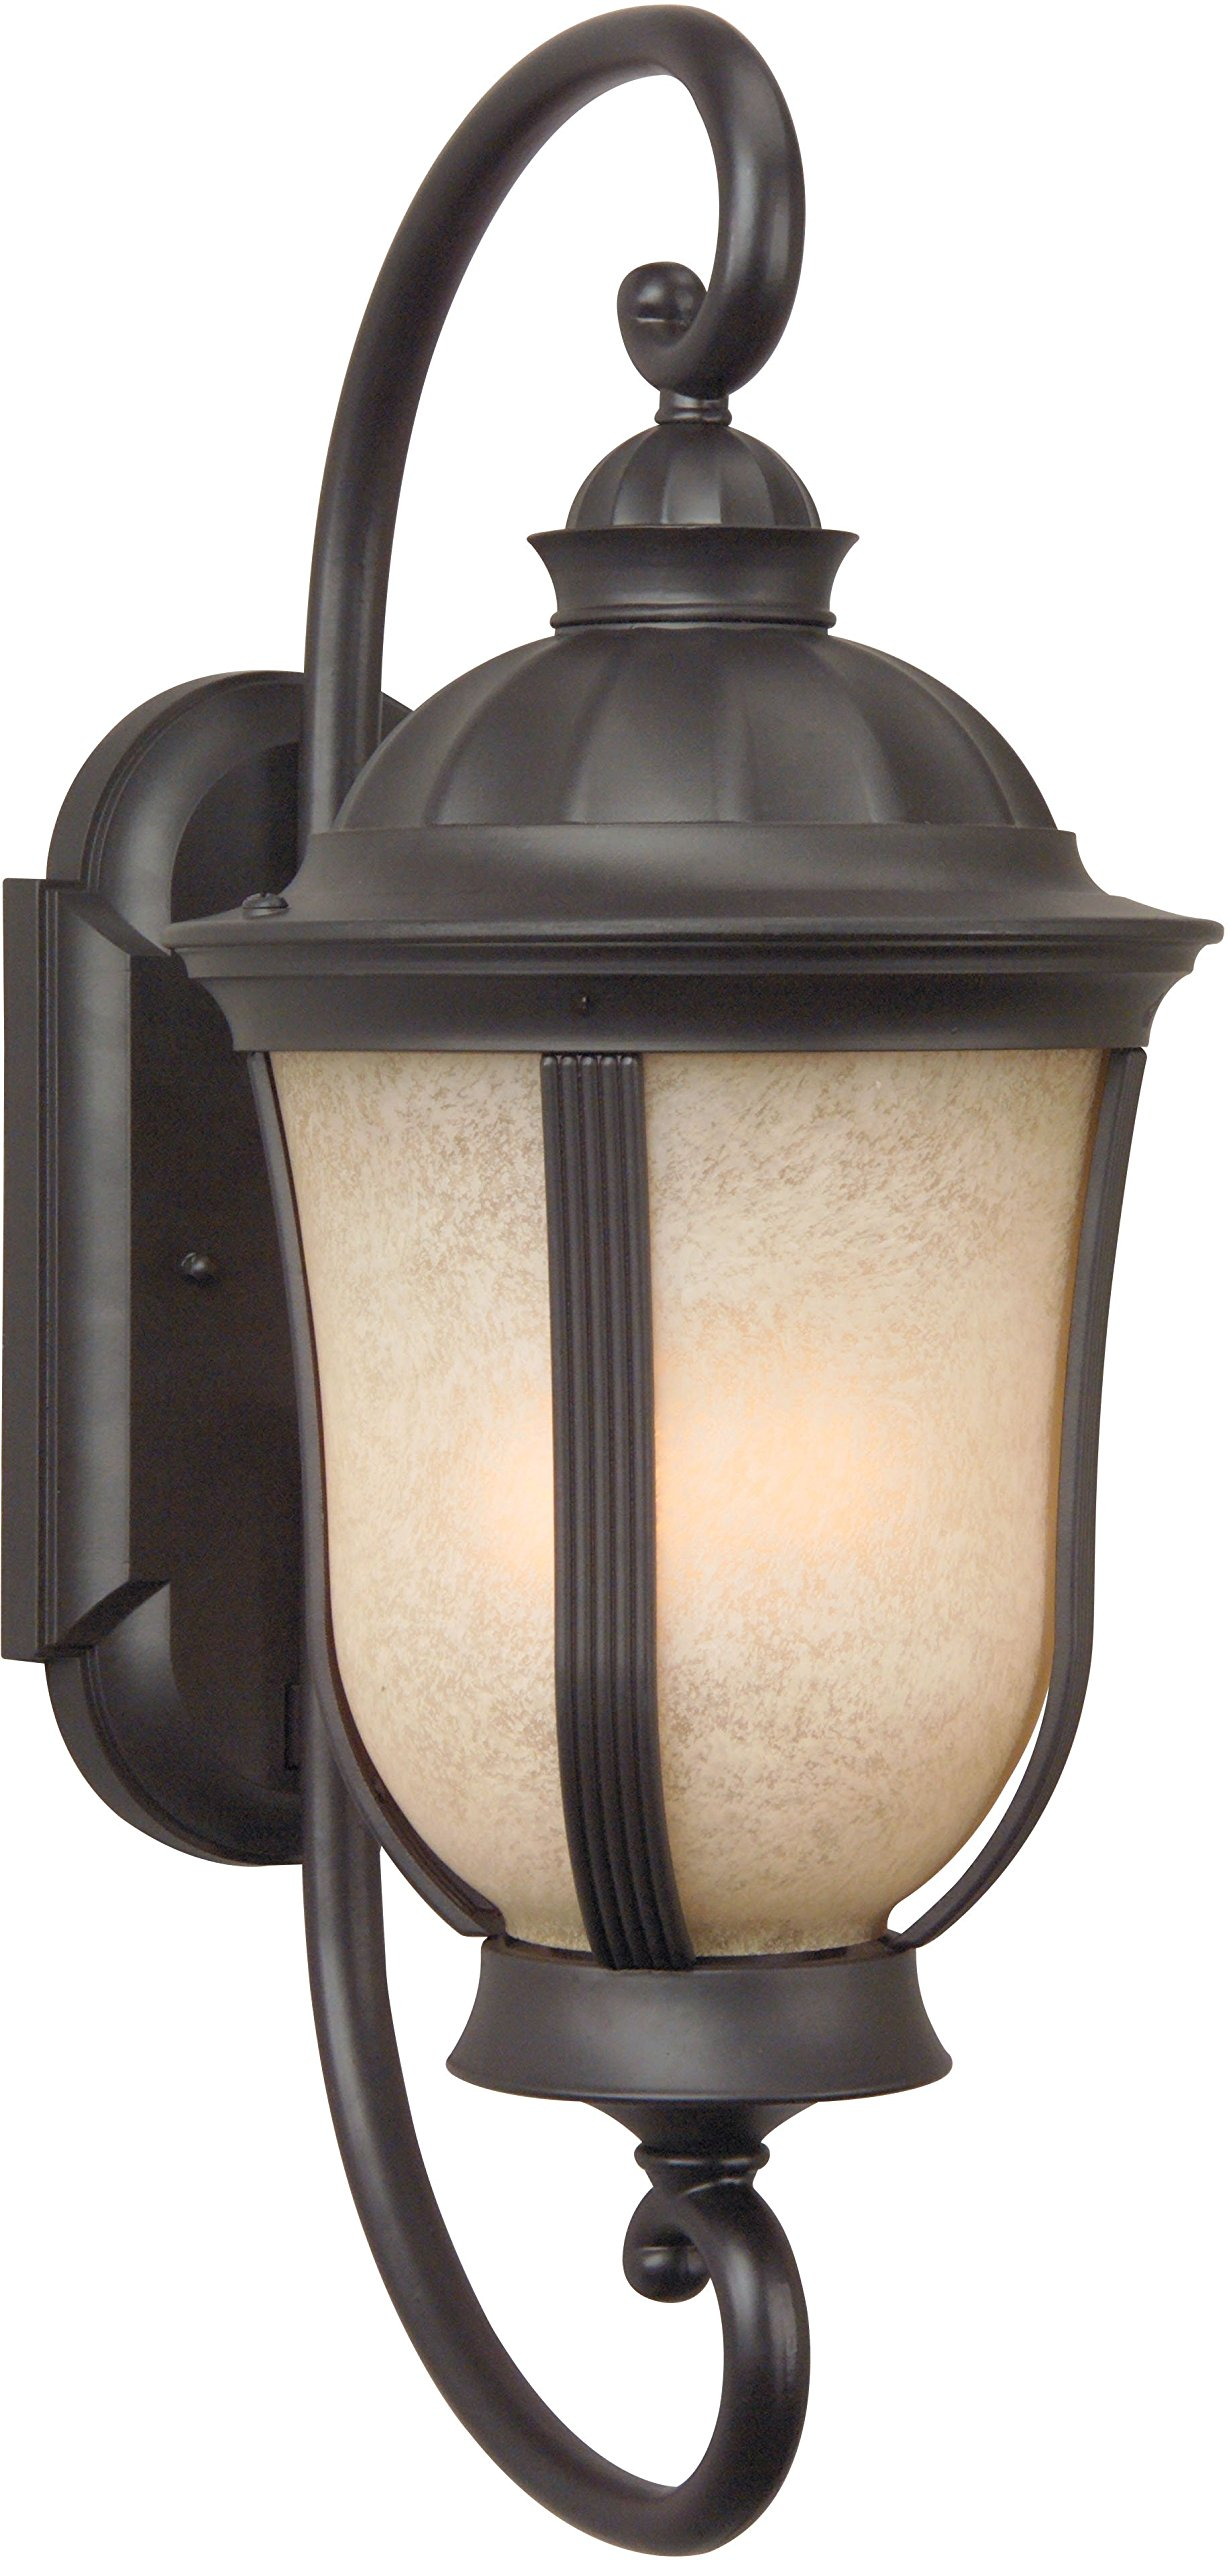 Craftmade Z6120-92-NRG Wall Lantern with Amber Frosted Glass Shades, Bronze Finish by Craftmade